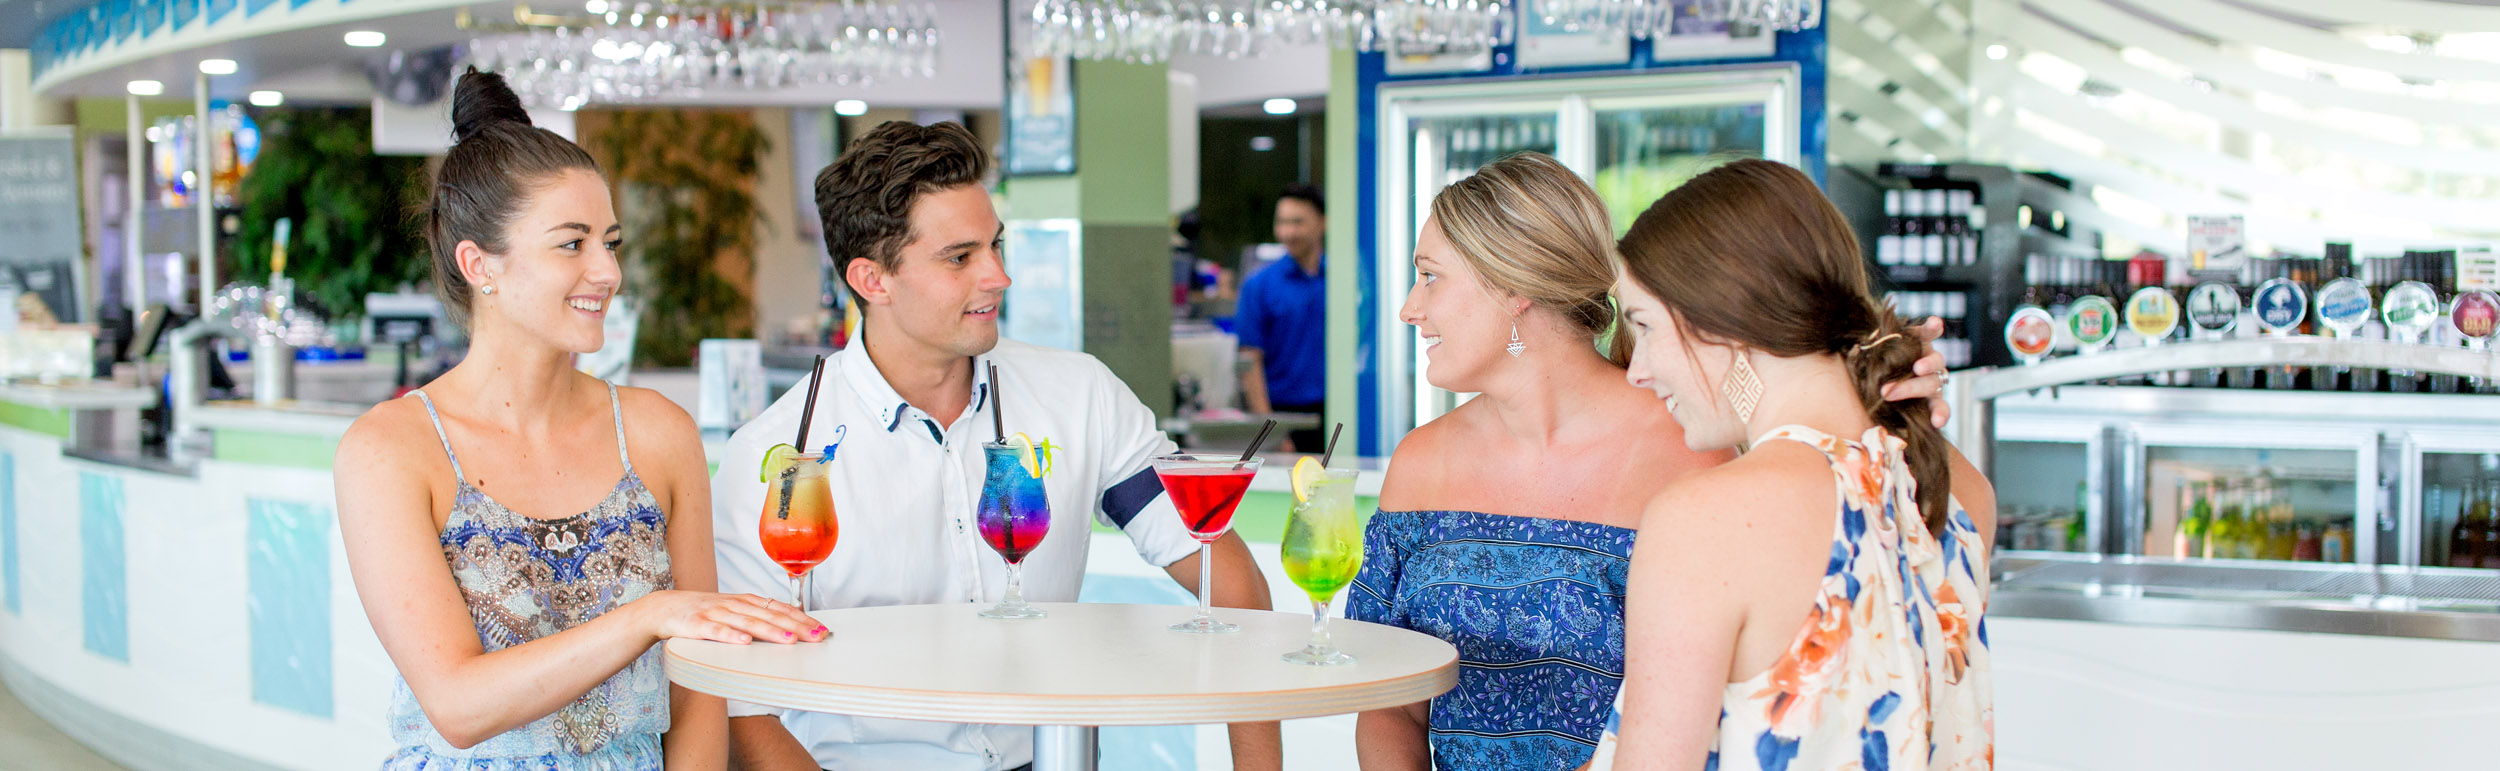 tavern-commercial-photography.jpg